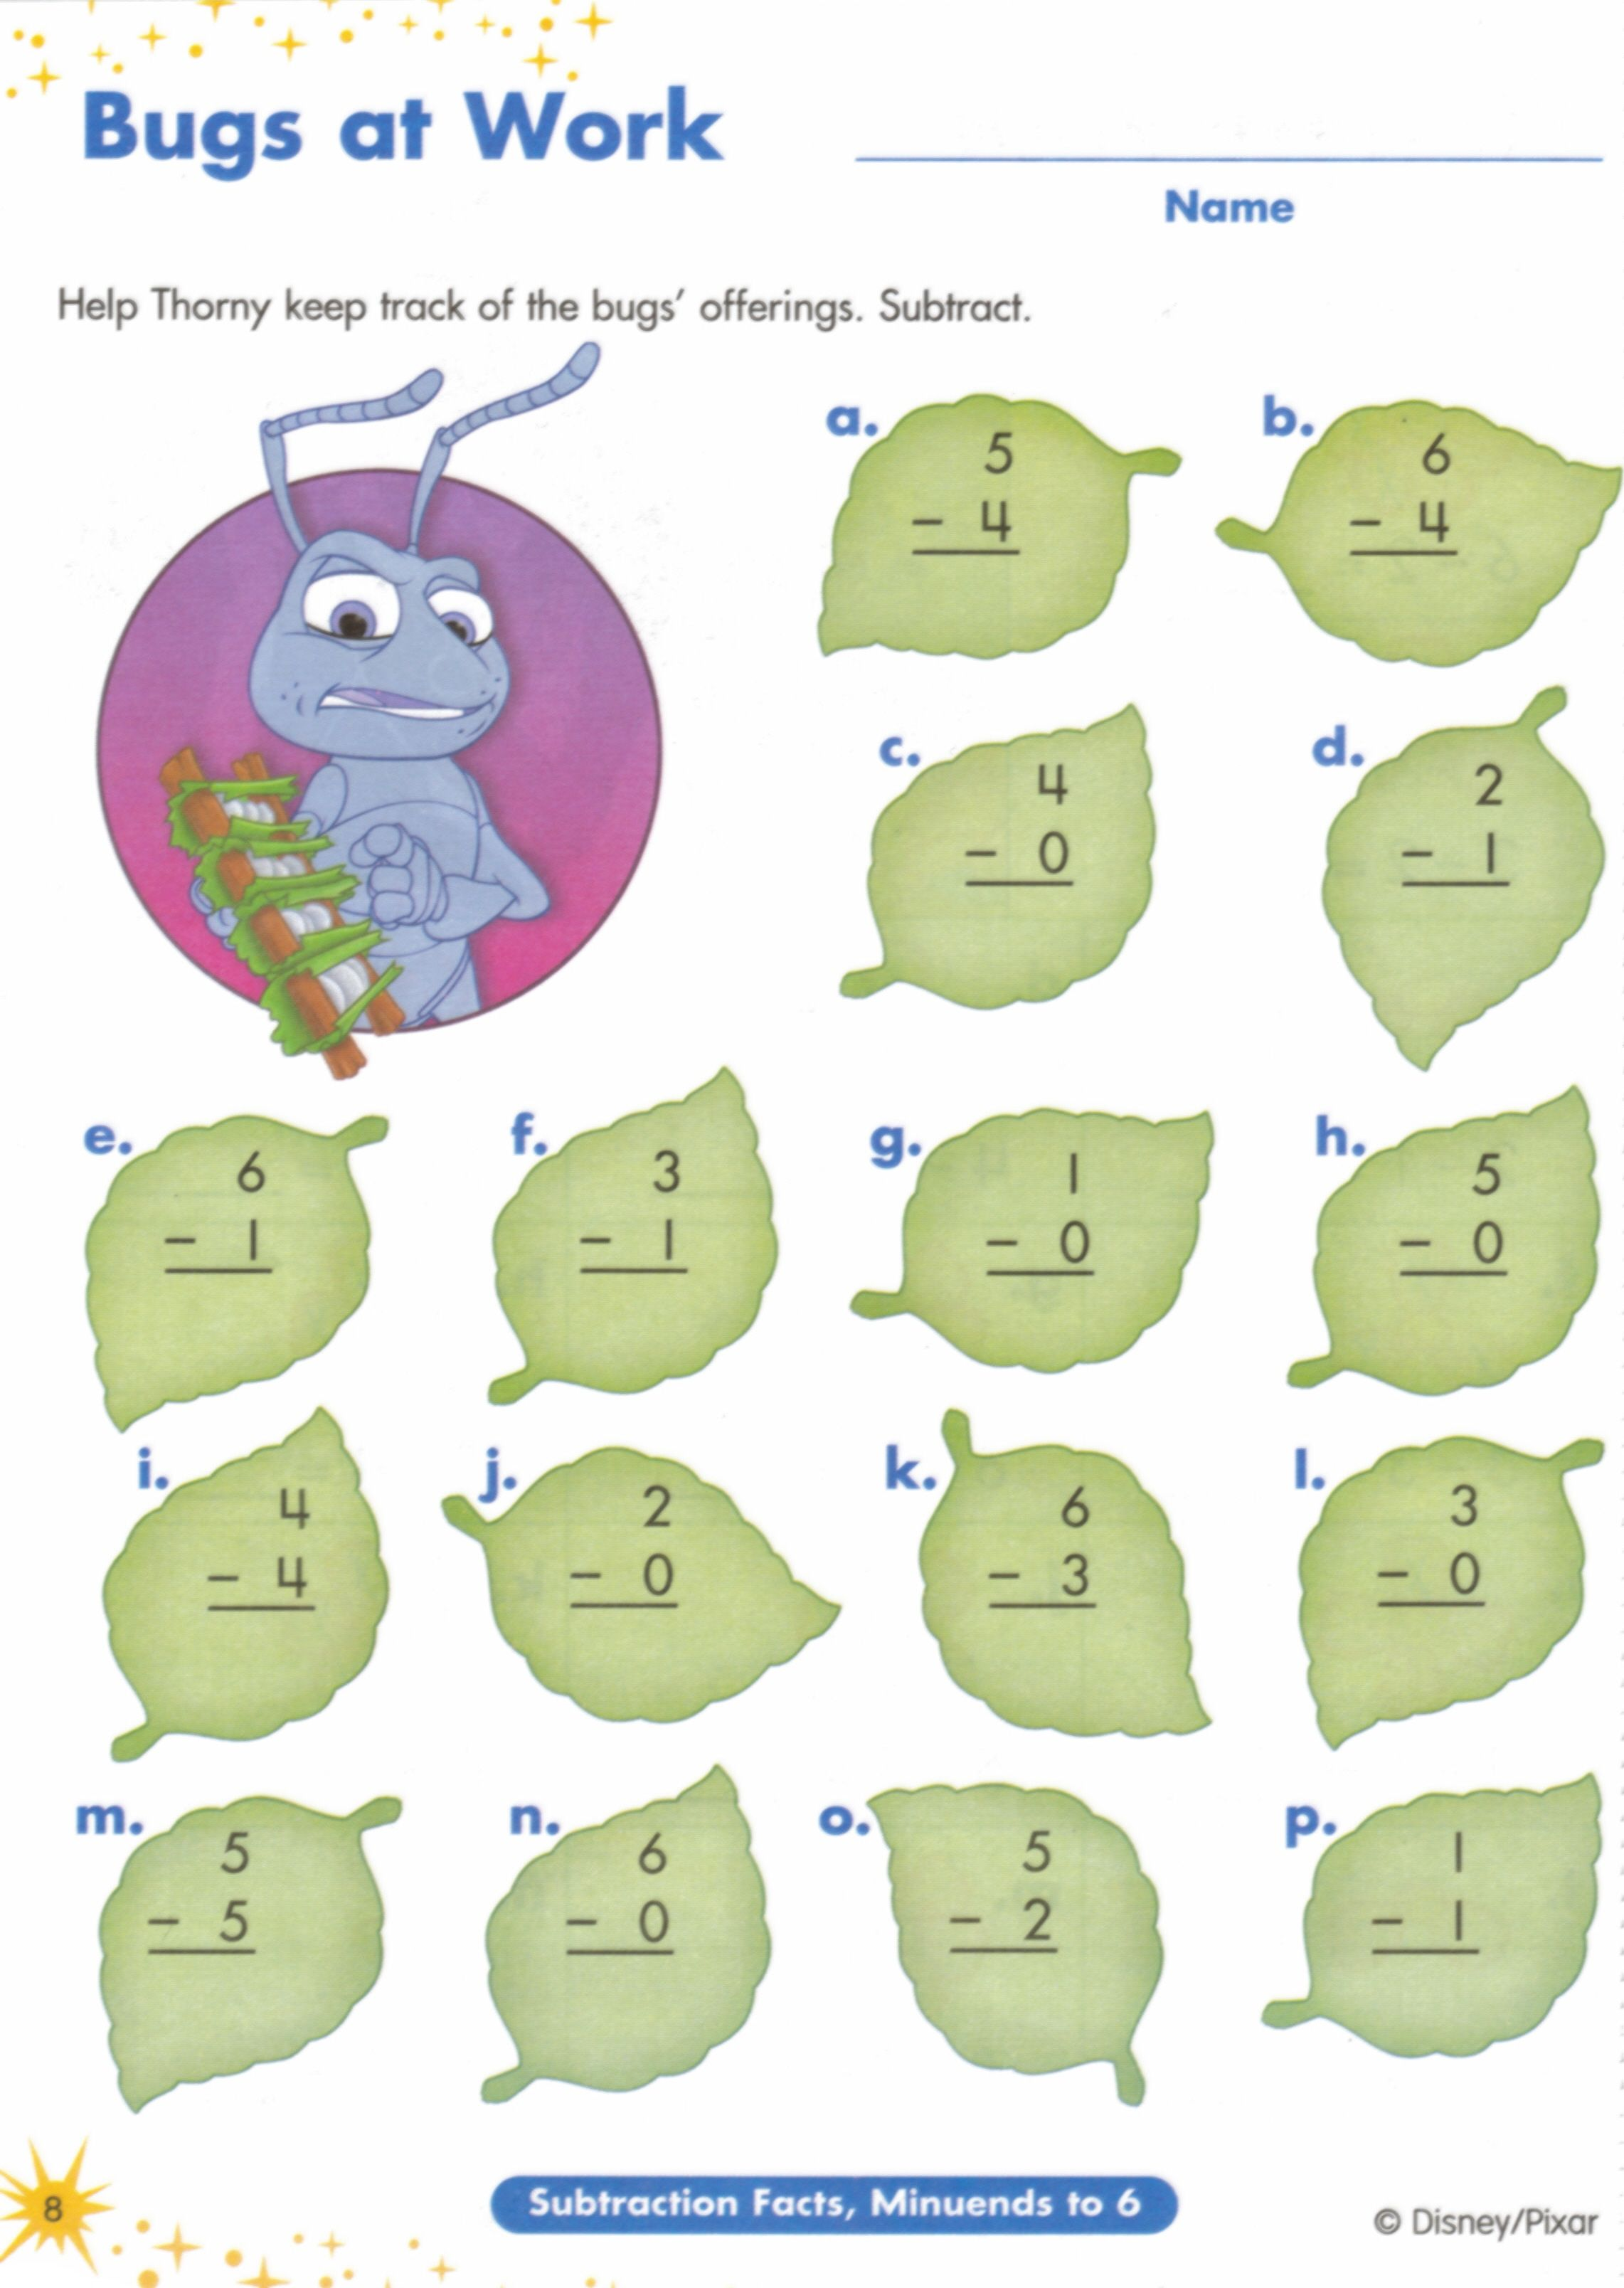 Proatmealus  Terrific  Images About Worksheets On Pinterest  Fun Facts For Kids  With Exciting  Images About Worksheets On Pinterest  Fun Facts For Kids Earth Day Worksheets And Jungles With Astonishing Hooked On Phonics Worksheets Also Algebra Worksheets Free In Addition Night By Elie Wiesel Worksheets And Rounding Practice Worksheets As Well As Kumon Worksheets Download Additionally Number  Worksheets For Preschoolers From Pinterestcom With Proatmealus  Exciting  Images About Worksheets On Pinterest  Fun Facts For Kids  With Astonishing  Images About Worksheets On Pinterest  Fun Facts For Kids Earth Day Worksheets And Jungles And Terrific Hooked On Phonics Worksheets Also Algebra Worksheets Free In Addition Night By Elie Wiesel Worksheets From Pinterestcom